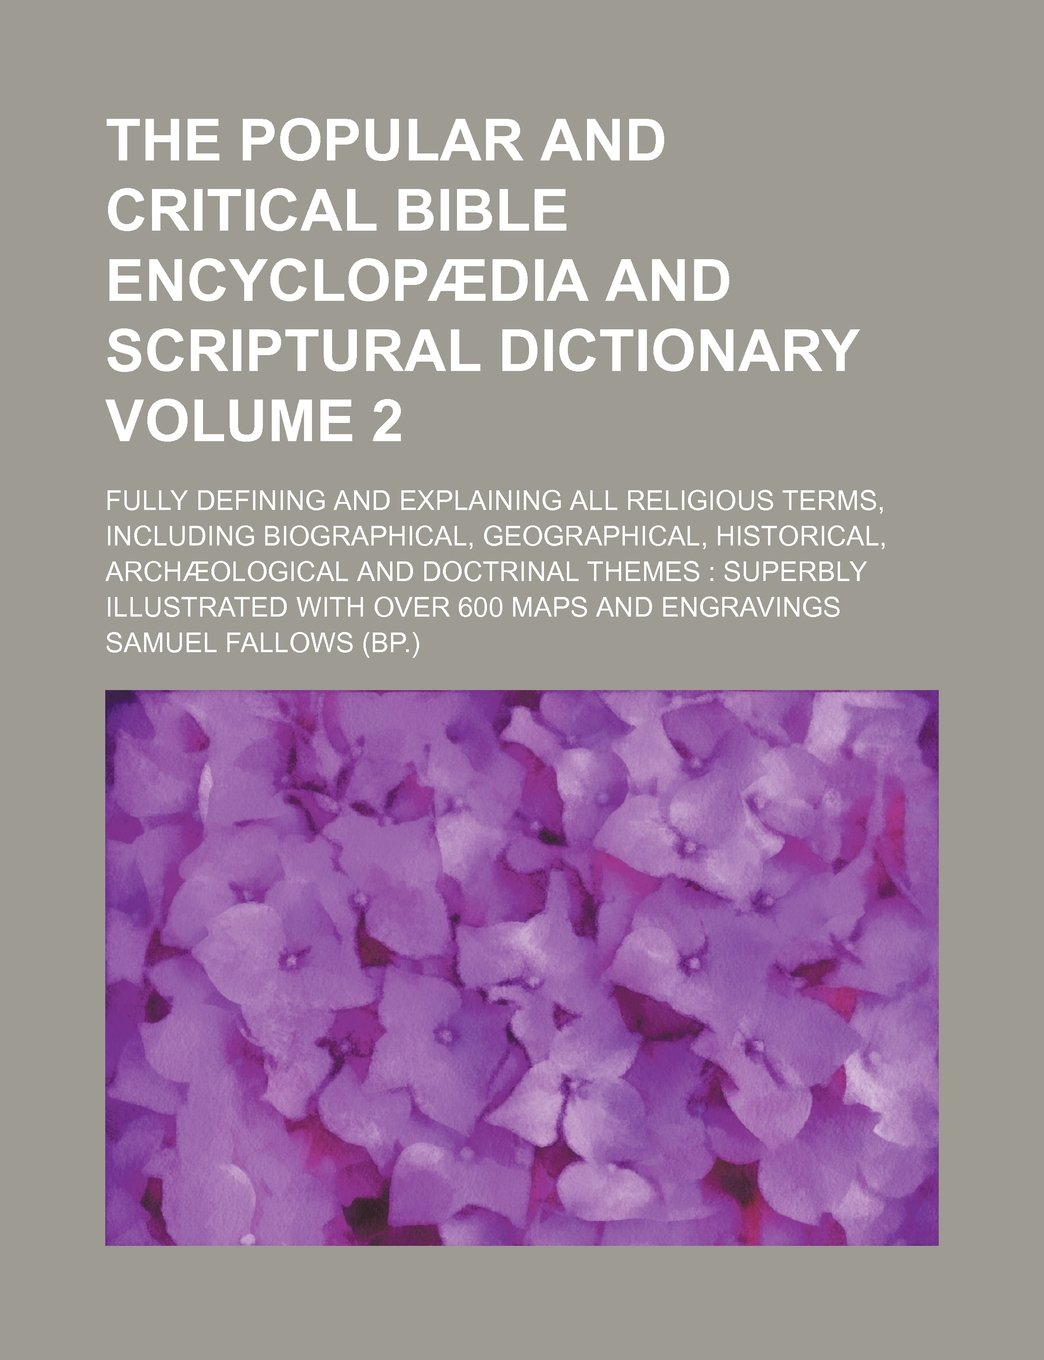 The Popular and critical Bible encyclopædia and Scriptural dictionary; fully defining and explaining all religious terms, including biographical, ... themes: superbly illustrated Volume 2 ebook